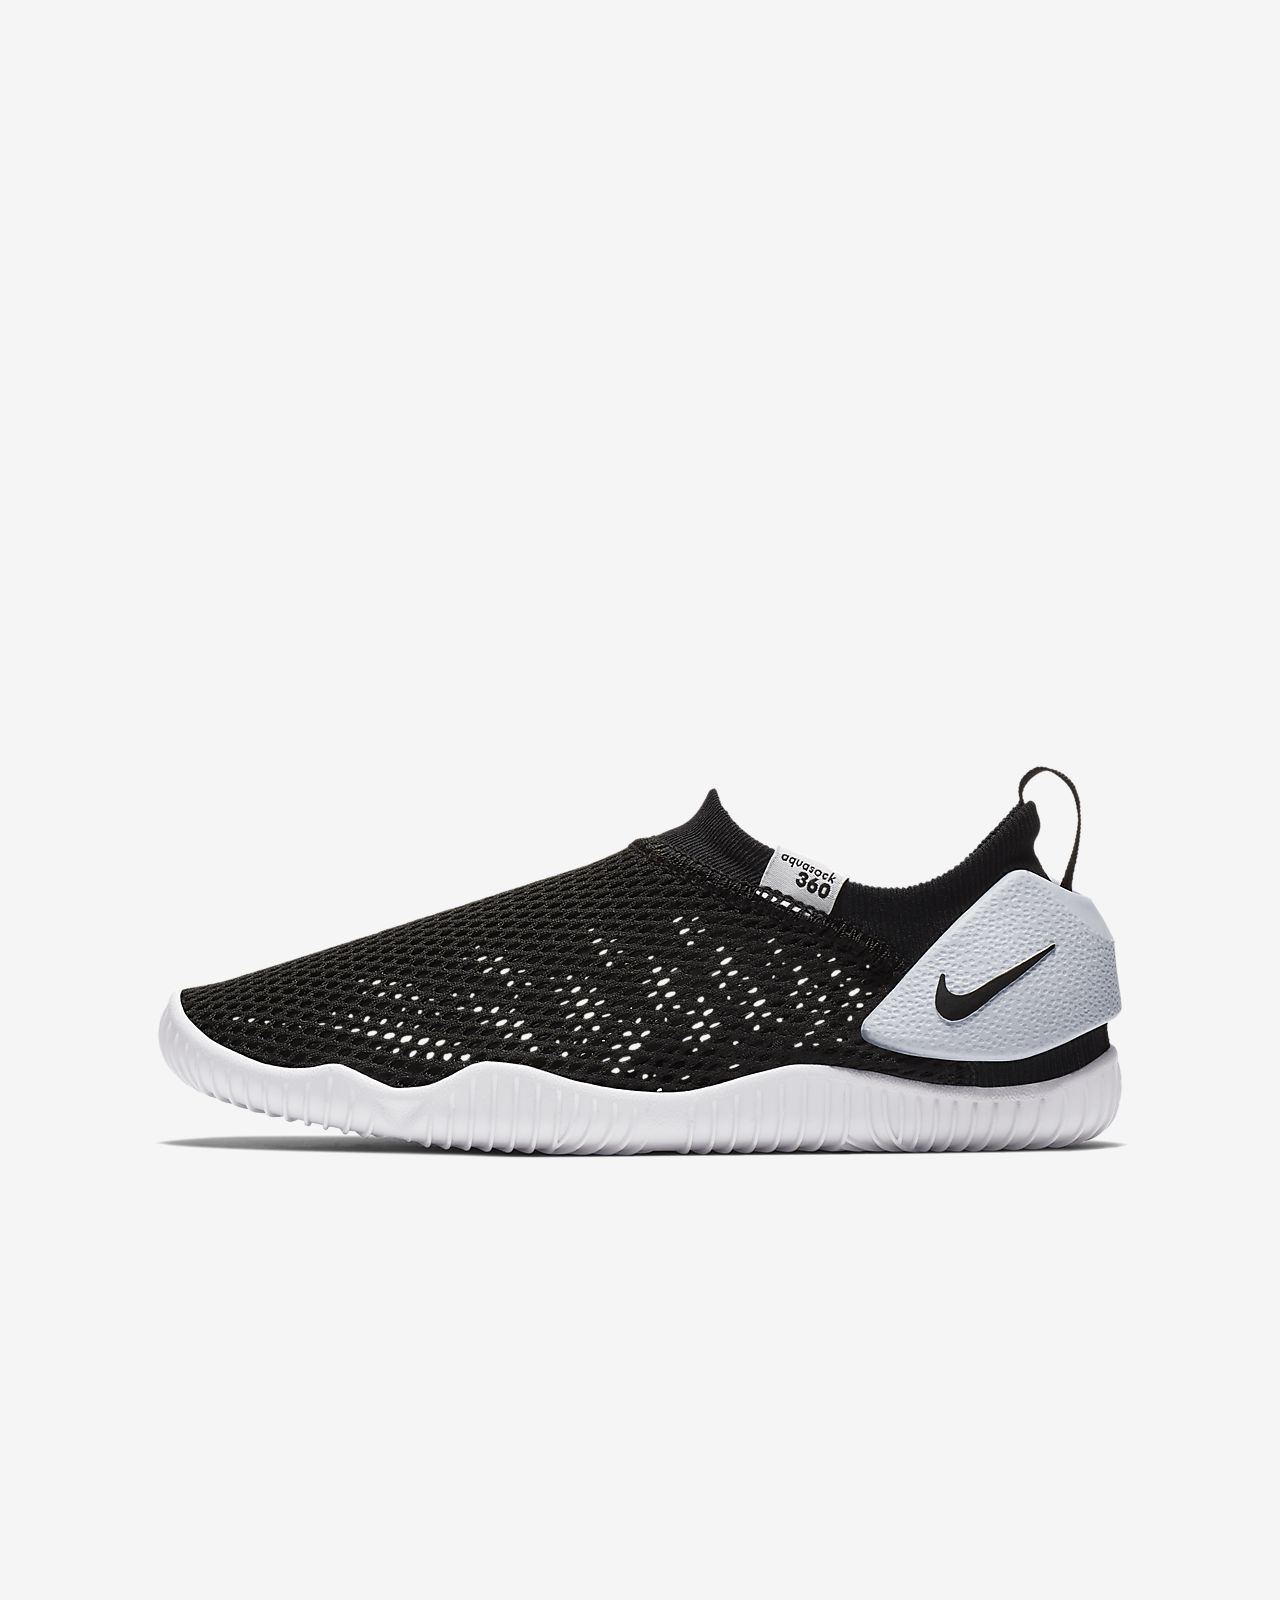 Nike Aqua Sock 360 (GS/PS) 大童运动童鞋